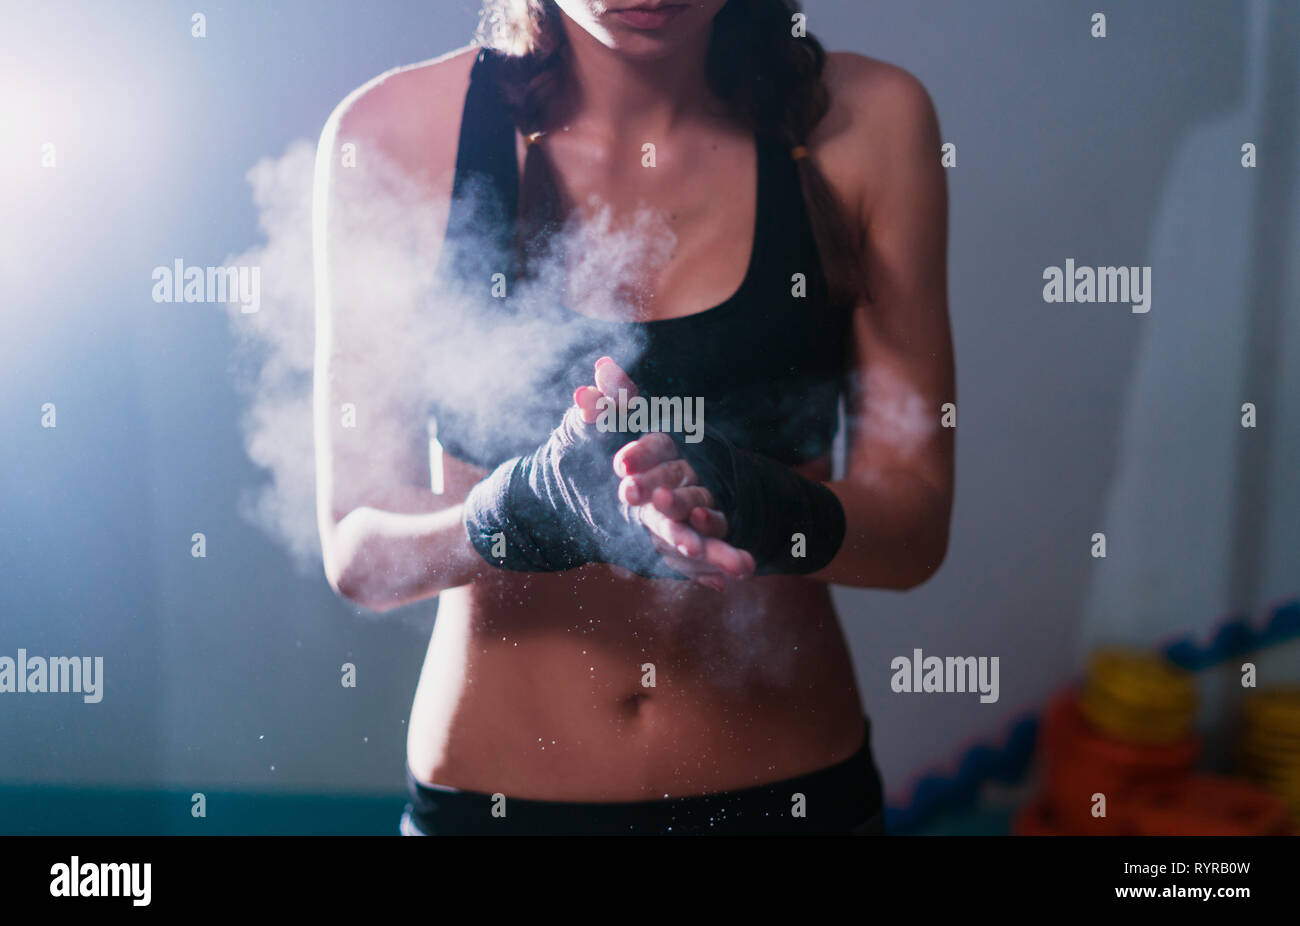 Young fighter boxer girl in training with heavy punching bag Stock Photo